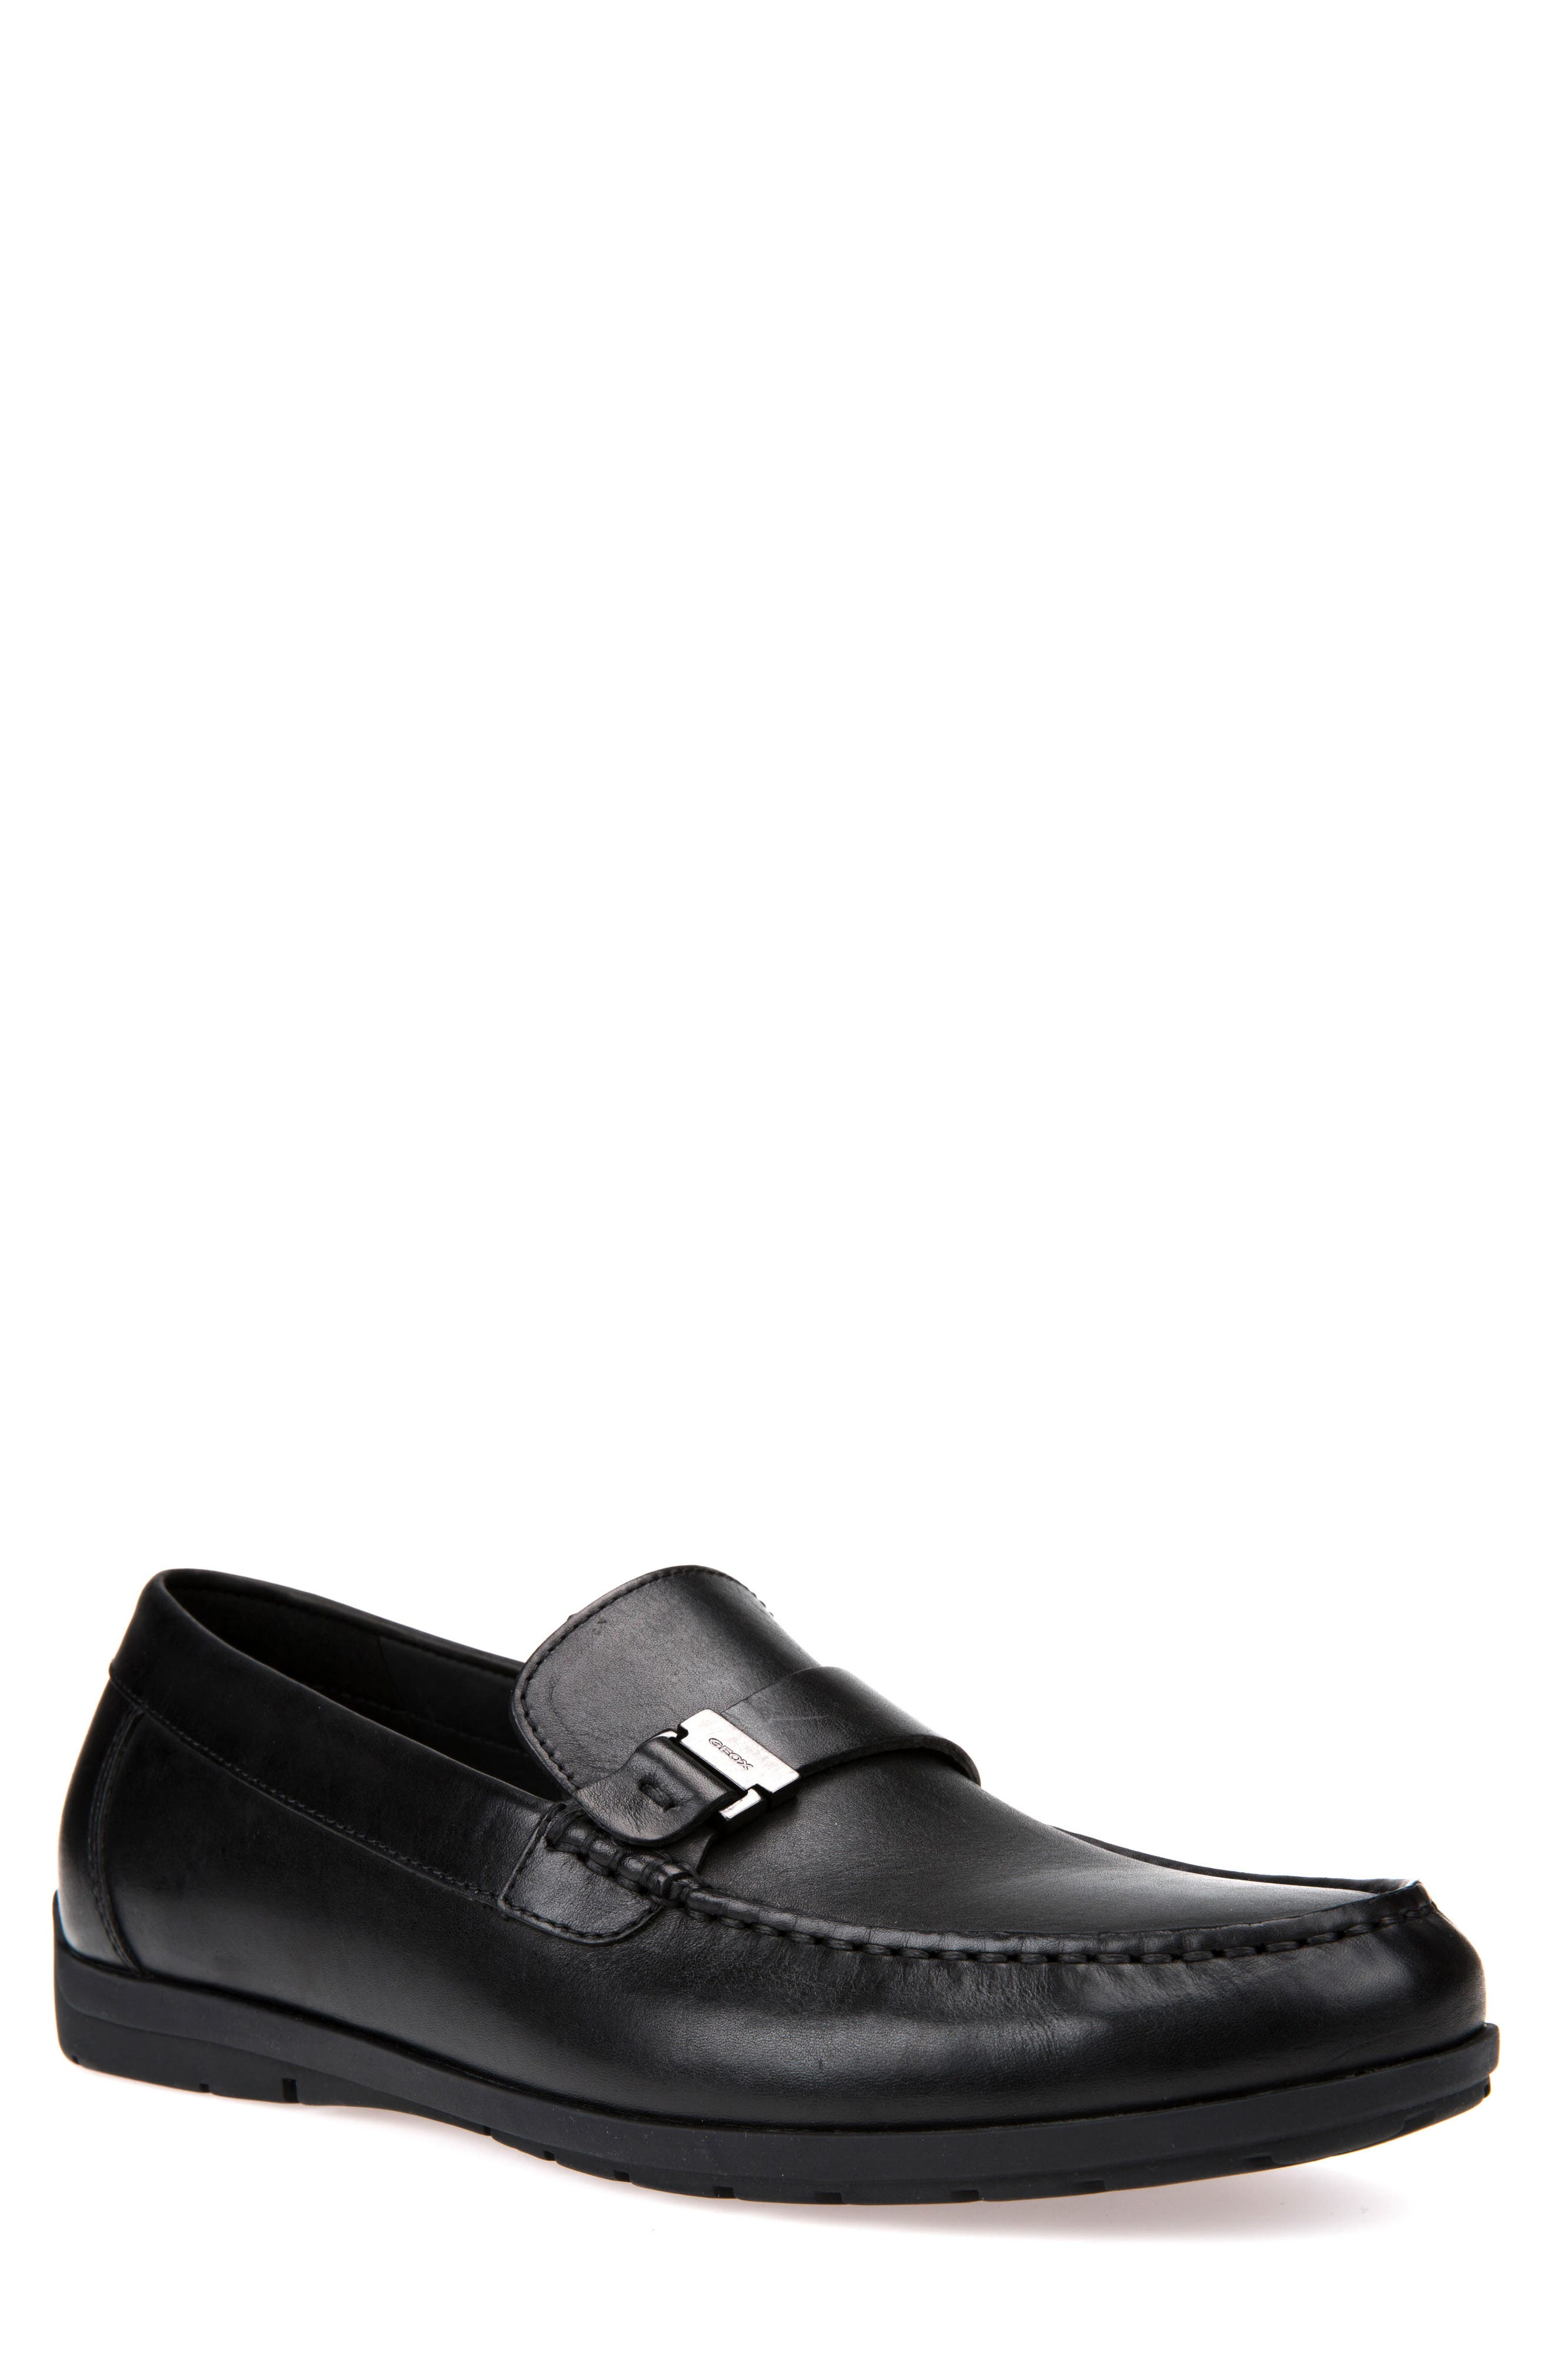 Siron W 1 Moc Toe Loafer,                             Main thumbnail 1, color,                             BLACK LEATHER